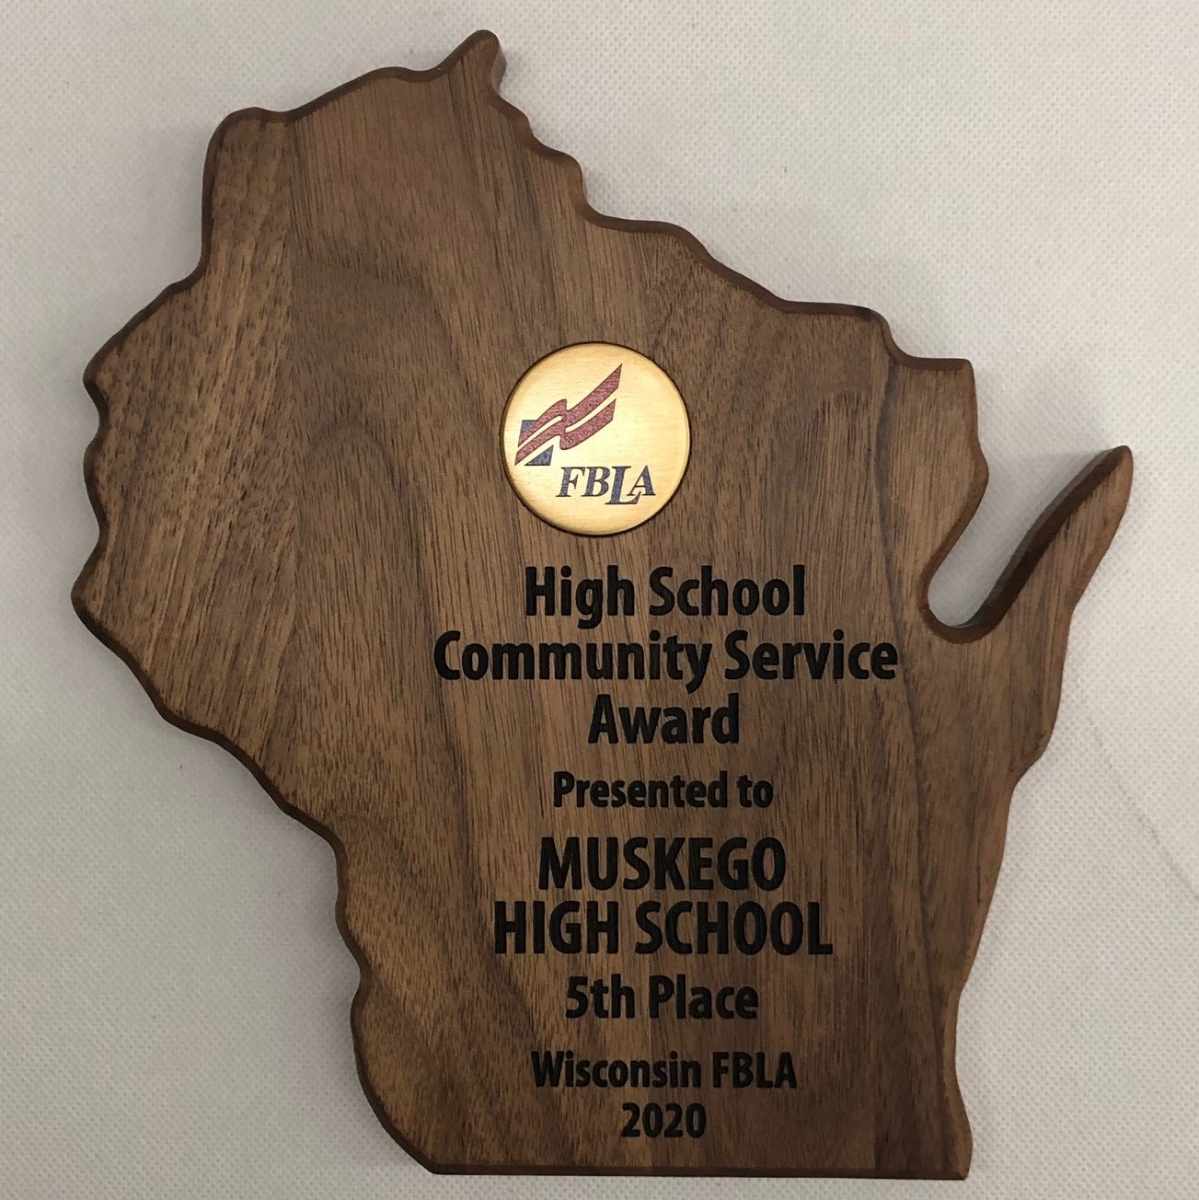 Community Service Award - 5th Place Muskego